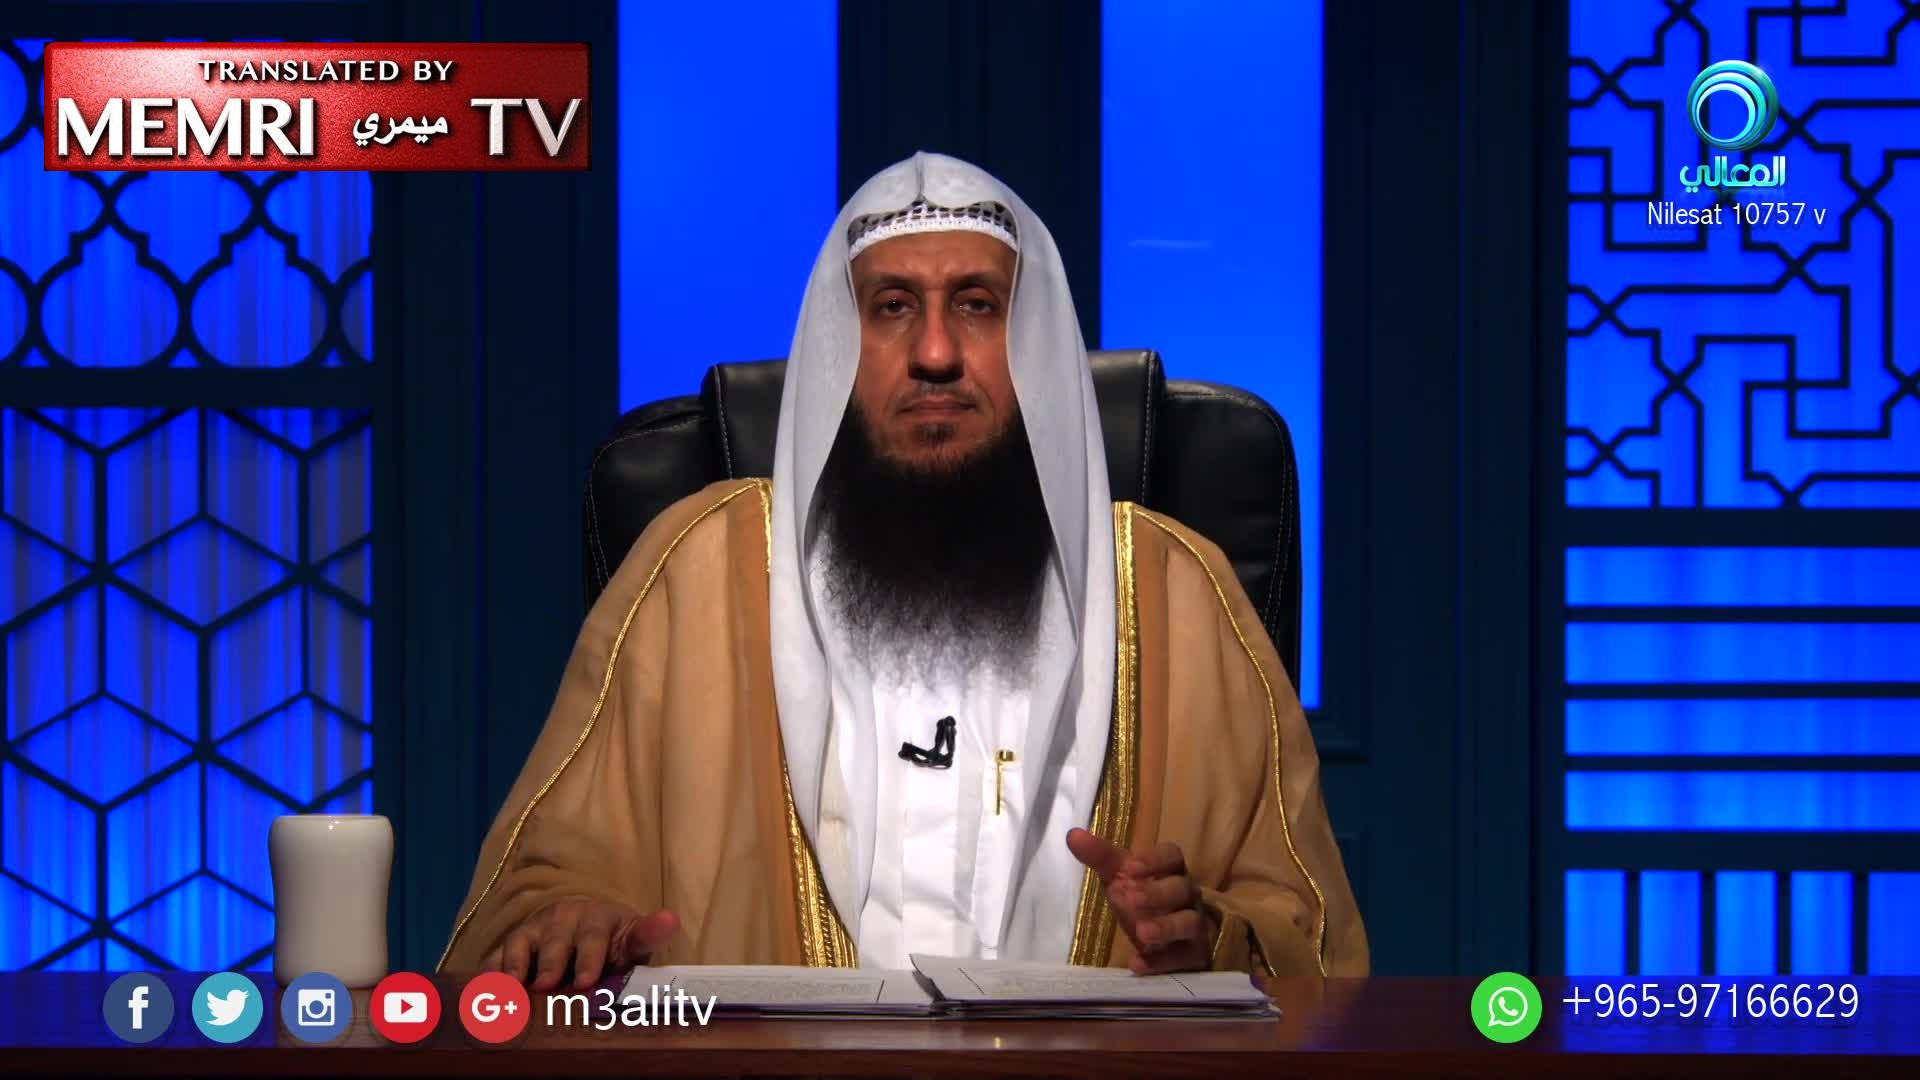 Kuwaiti Islamic Scholar Muhammad Hammoud Al-Najdi: The Quran Encourages Offensive Jihad by Means of Force; It Is Used to Humiliate Infidels, Spread Islam